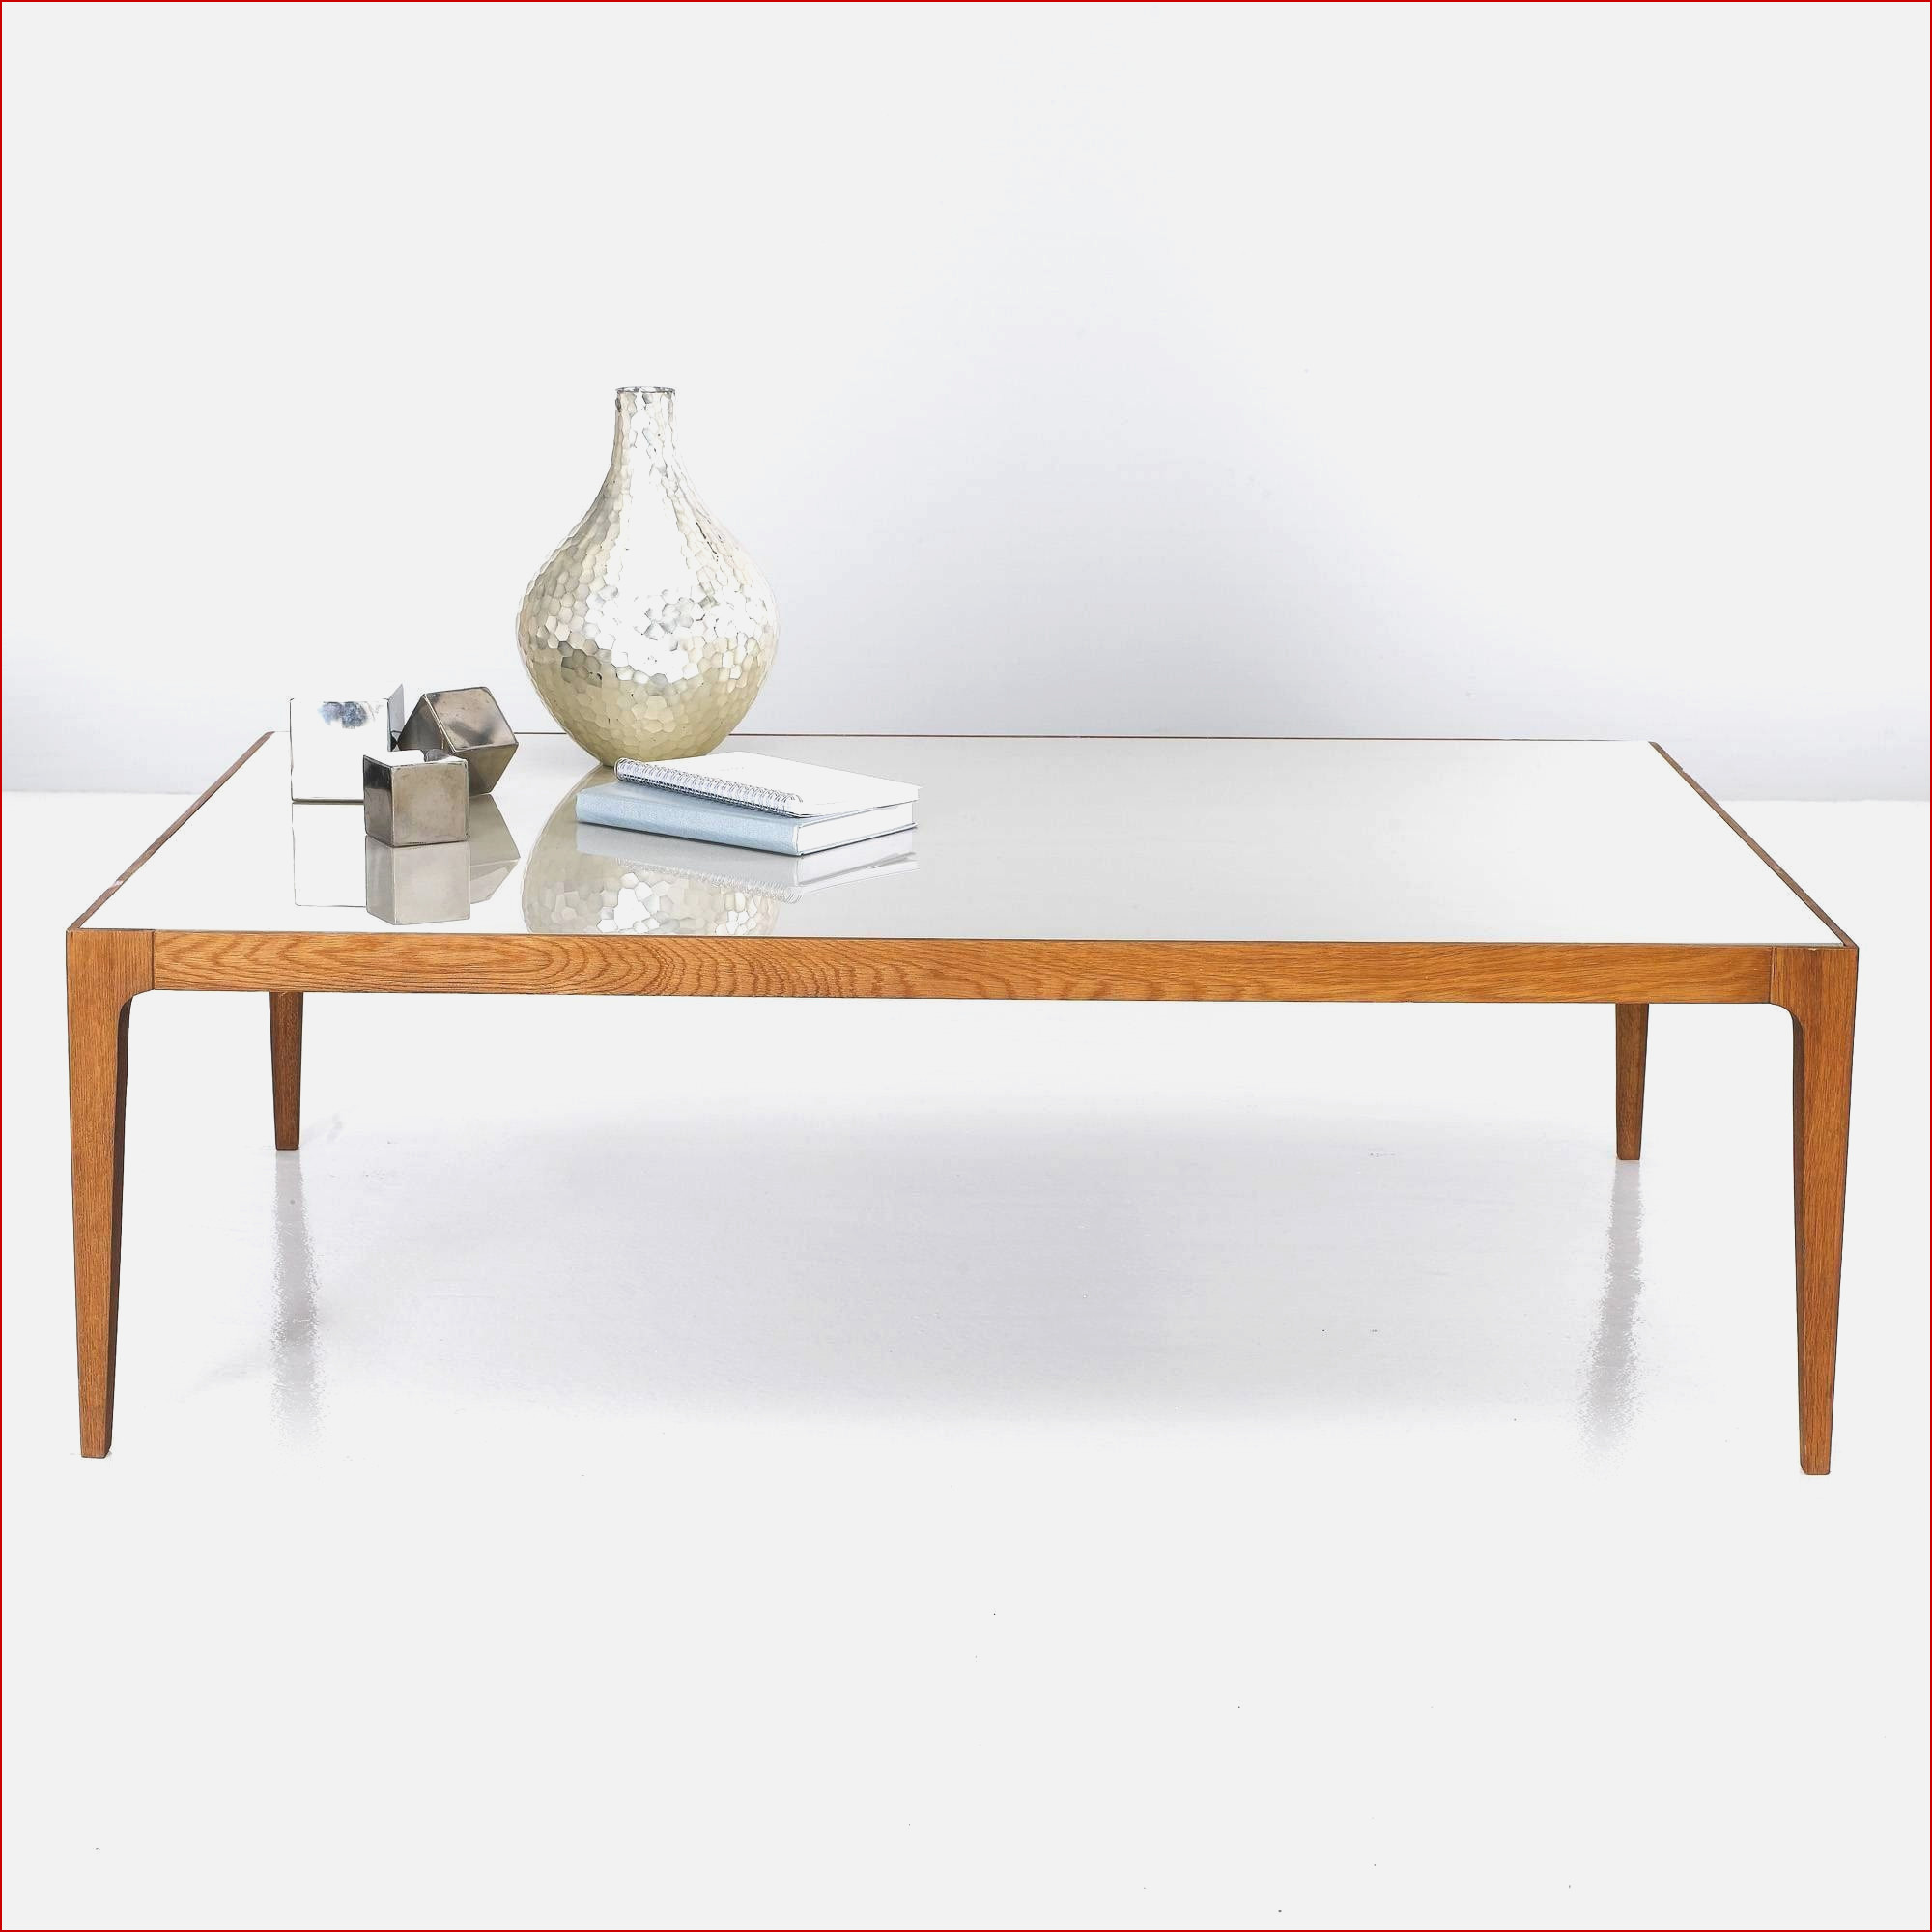 Table Basse Scandinave Ikea Table Basse Ronde Scandinave Ikea Boutique Gain De Place Fr